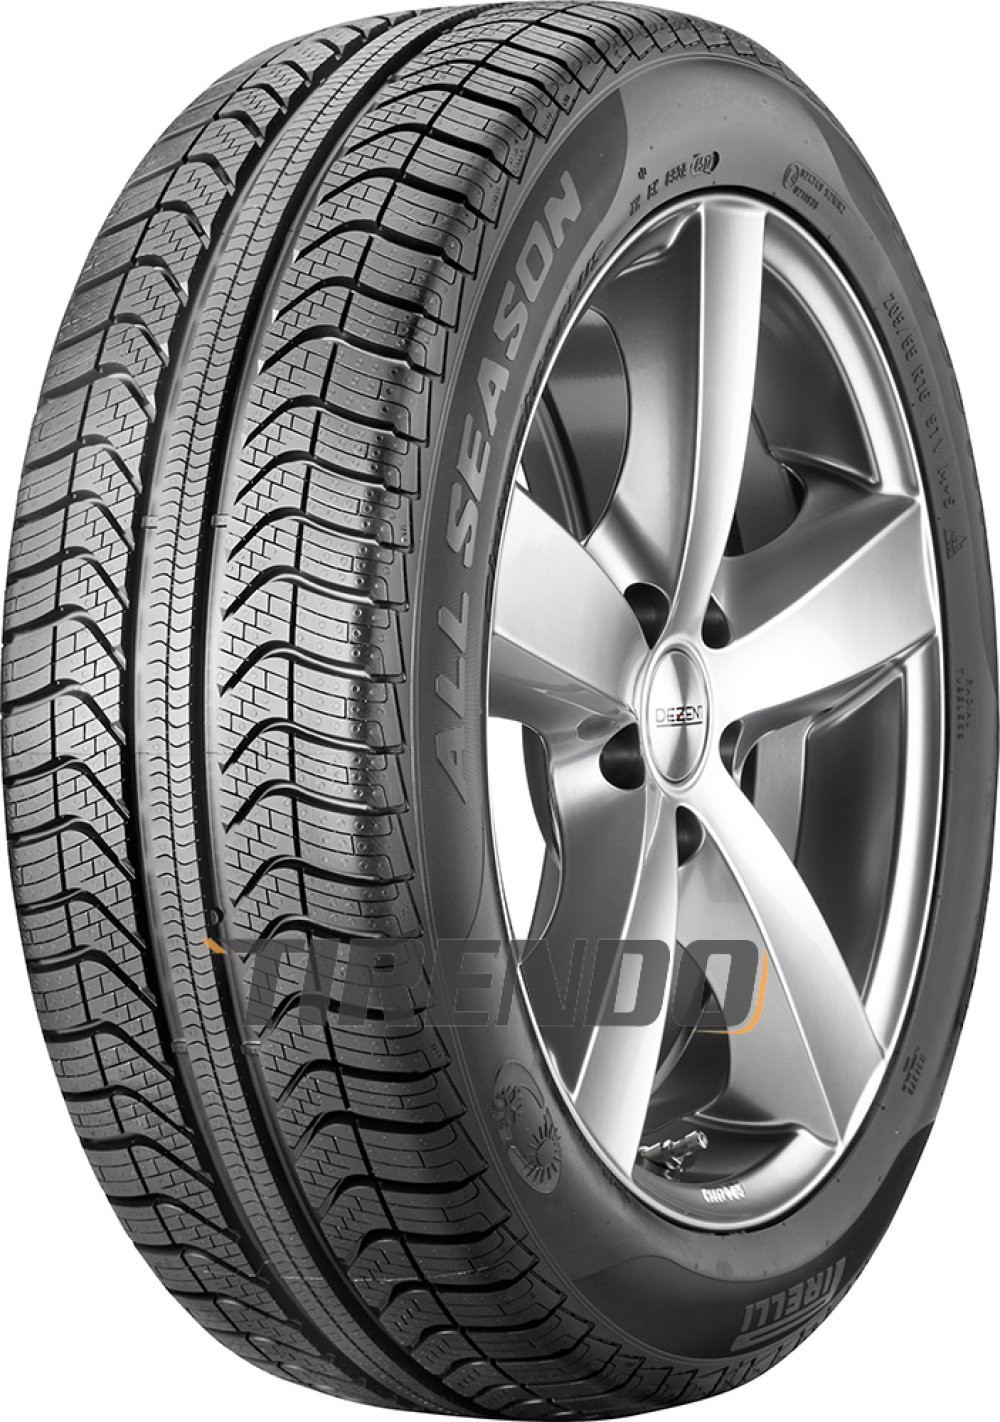 Pirelli Cinturato All Season Plus 245/40R18 97Y